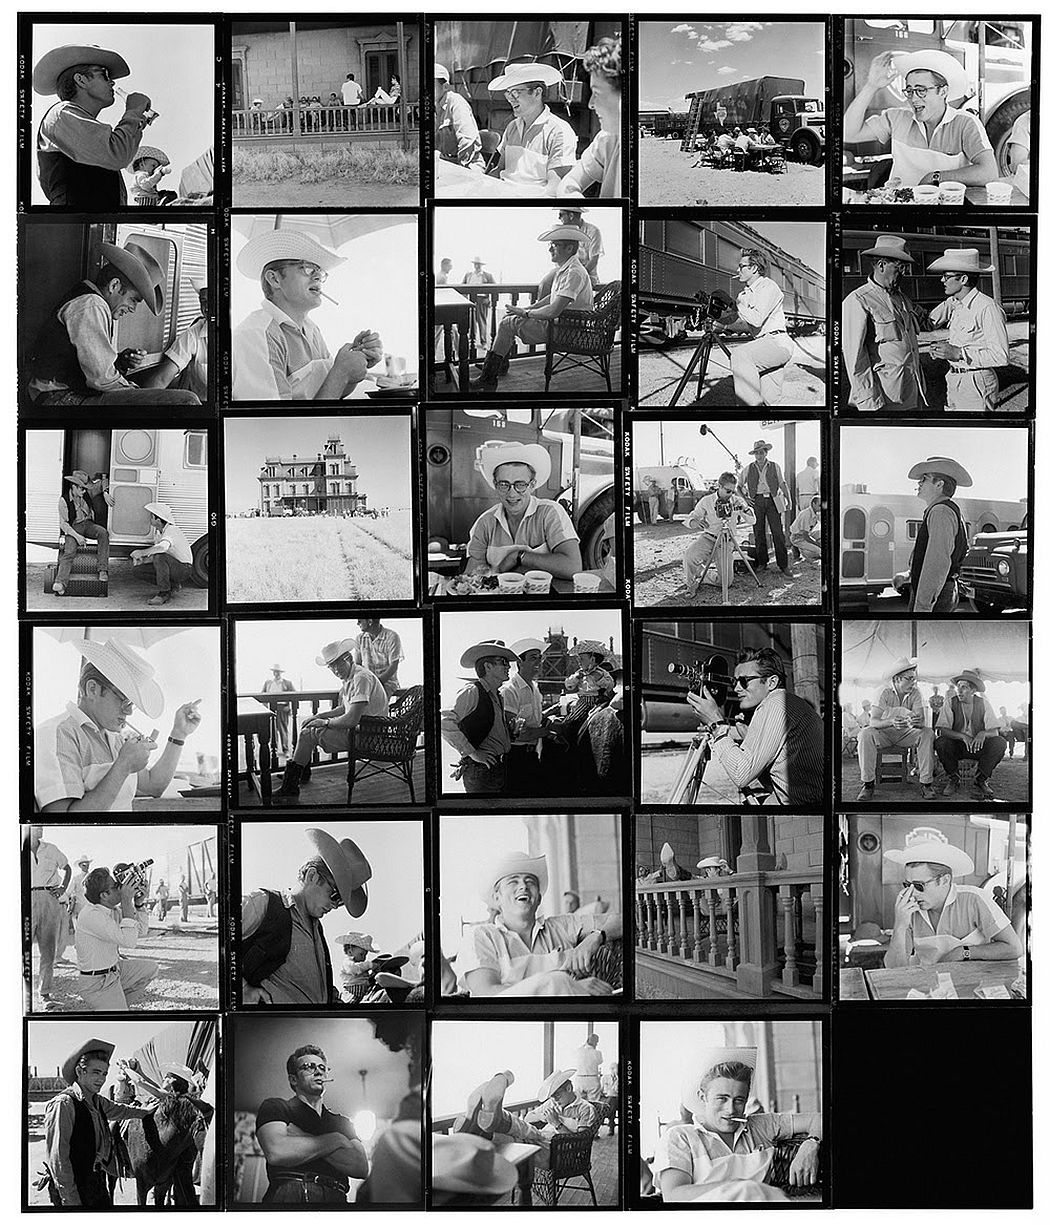 vintage-contact-sheets-from-hollywood-films-06